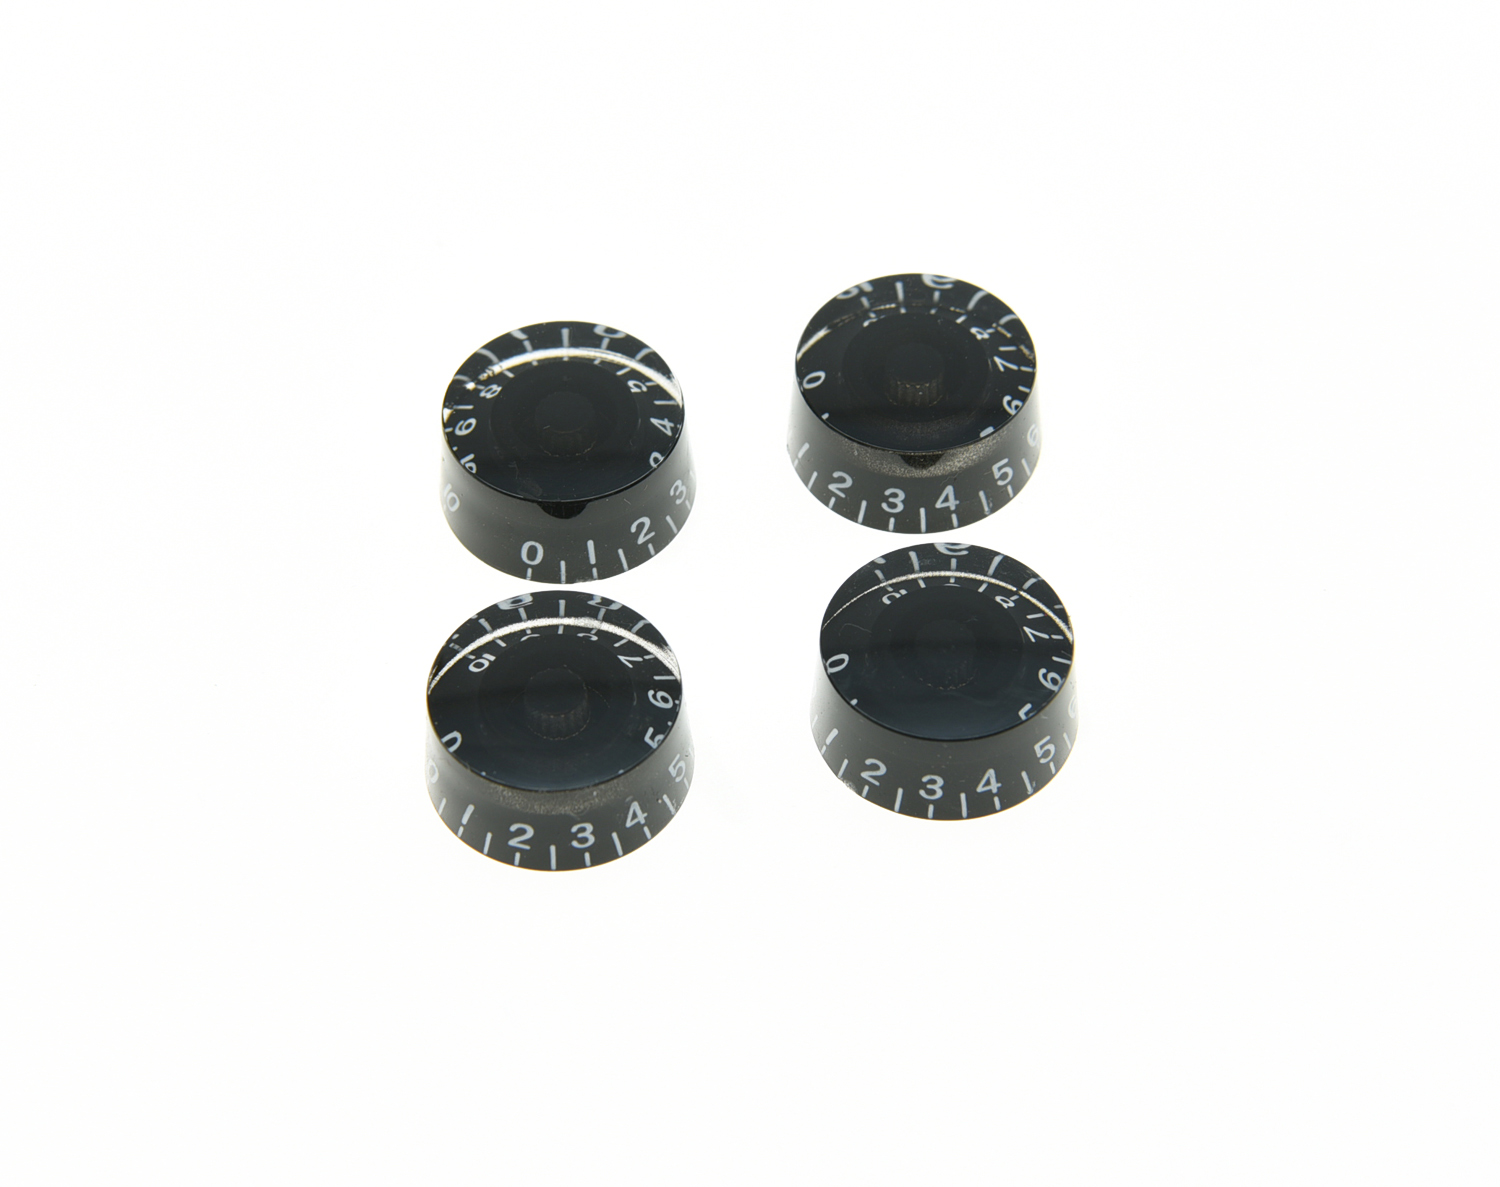 KAISH 4x Black LP Guitar Knobs, Control Knobs Speed Knobs kaish black p90 high power sound neck